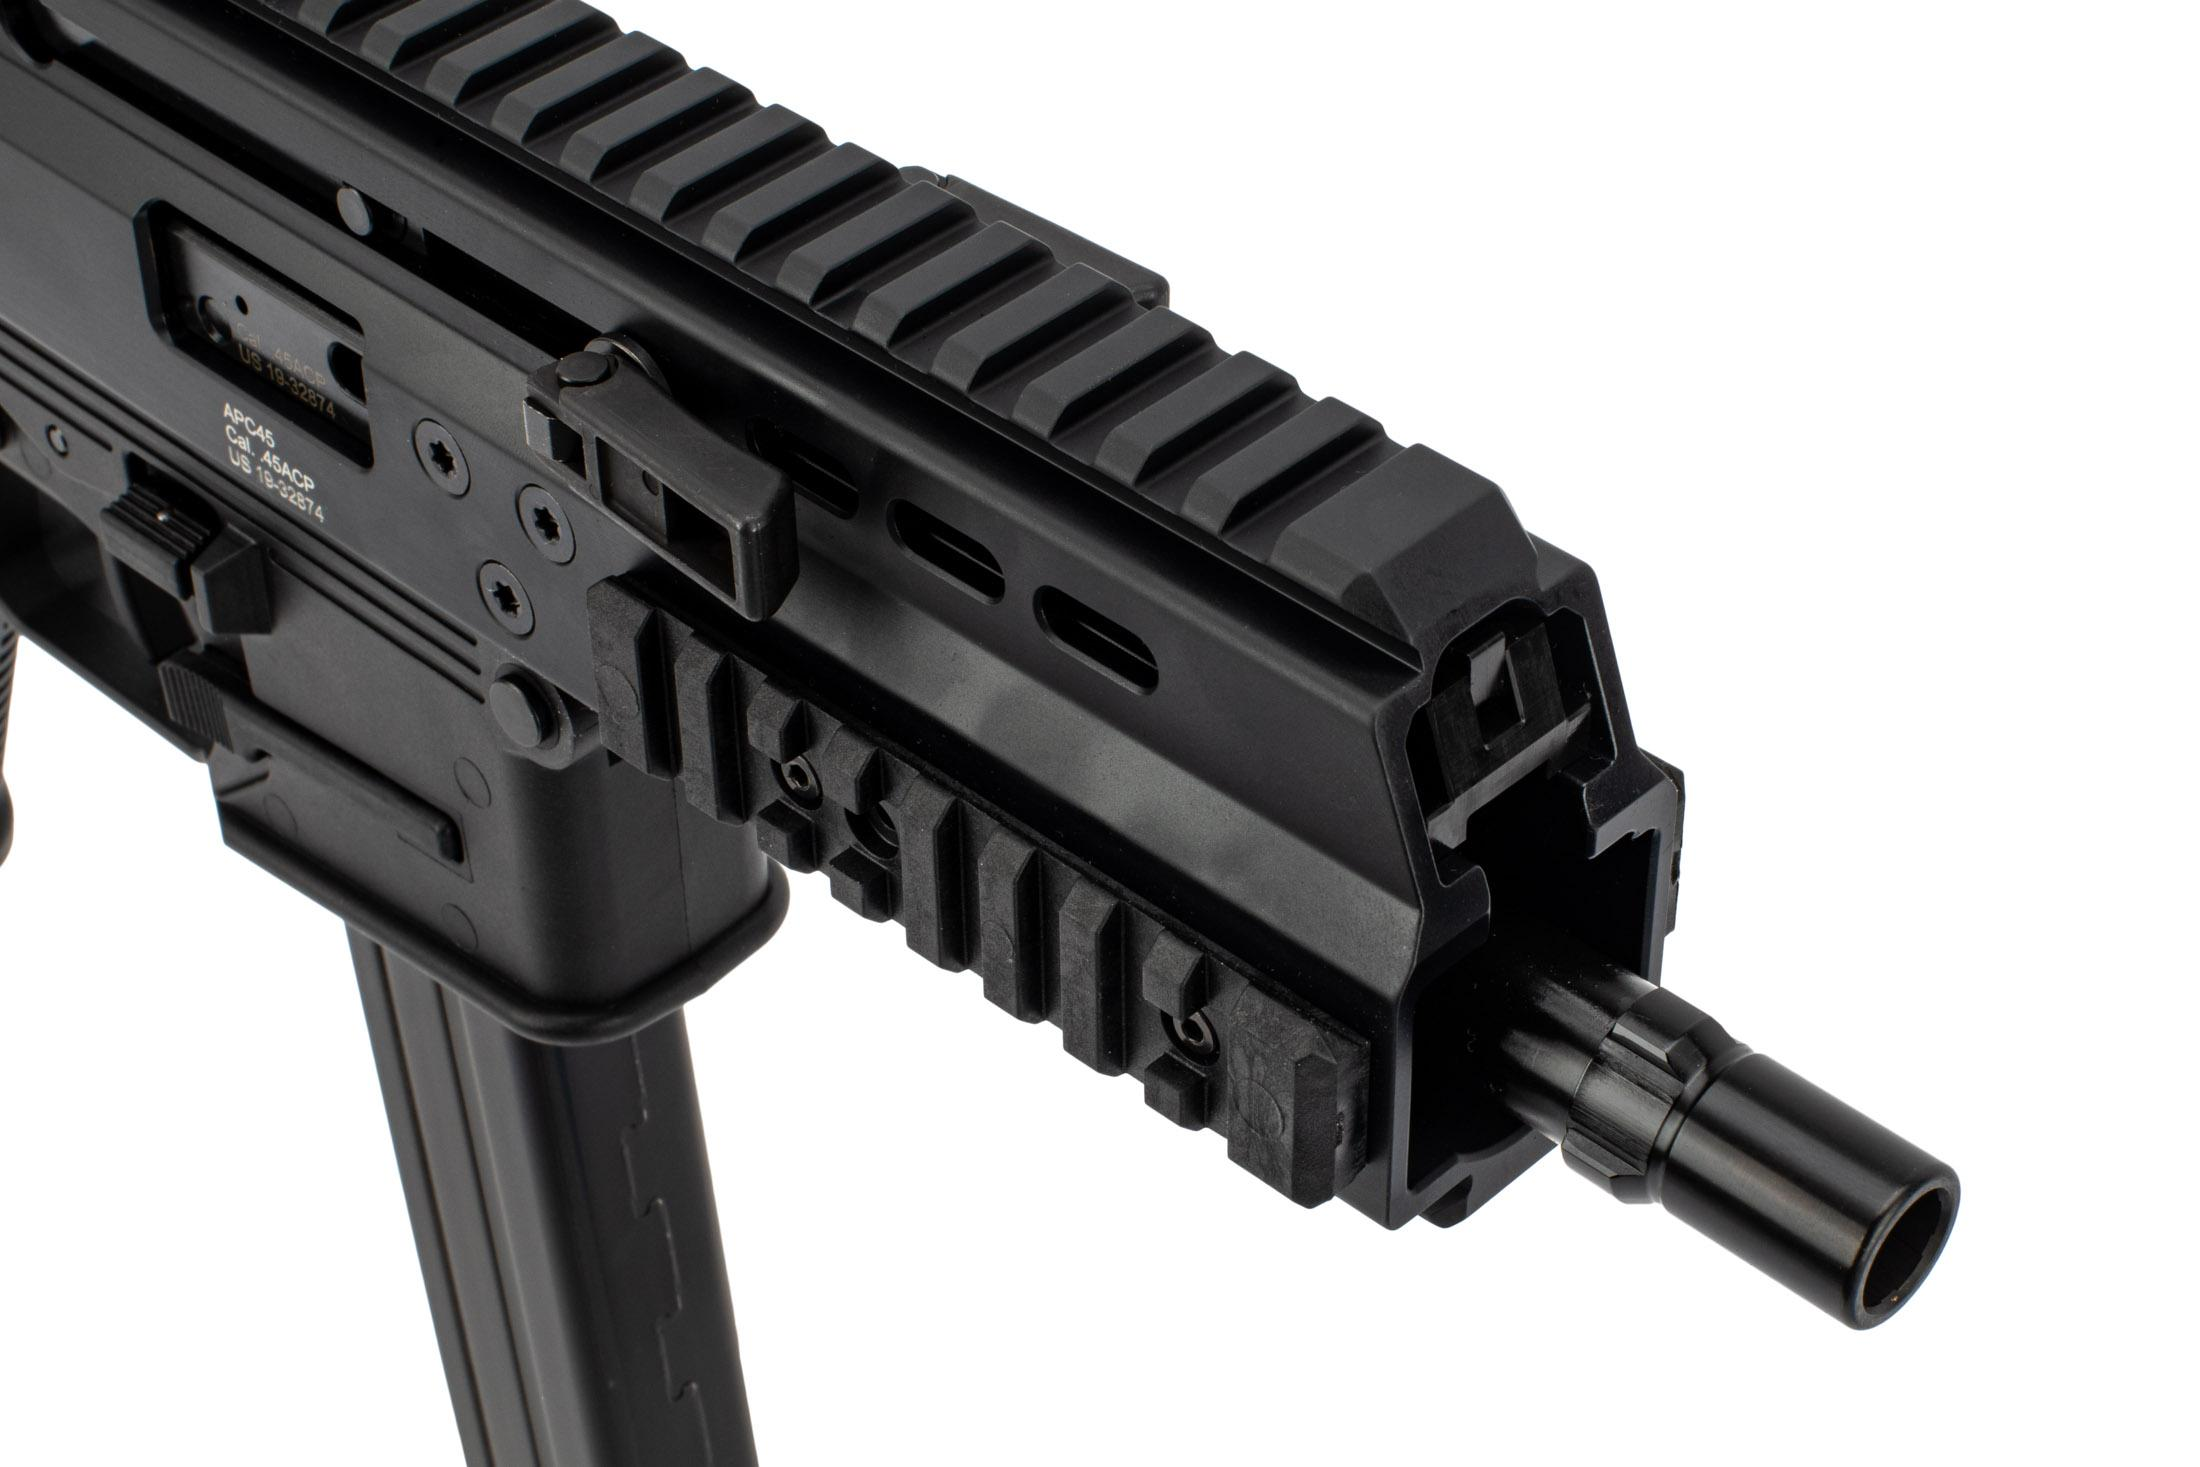 Brugger and Thomet APC-45 Pro Pistol features an ambidextrous non-reciprocating charging handle